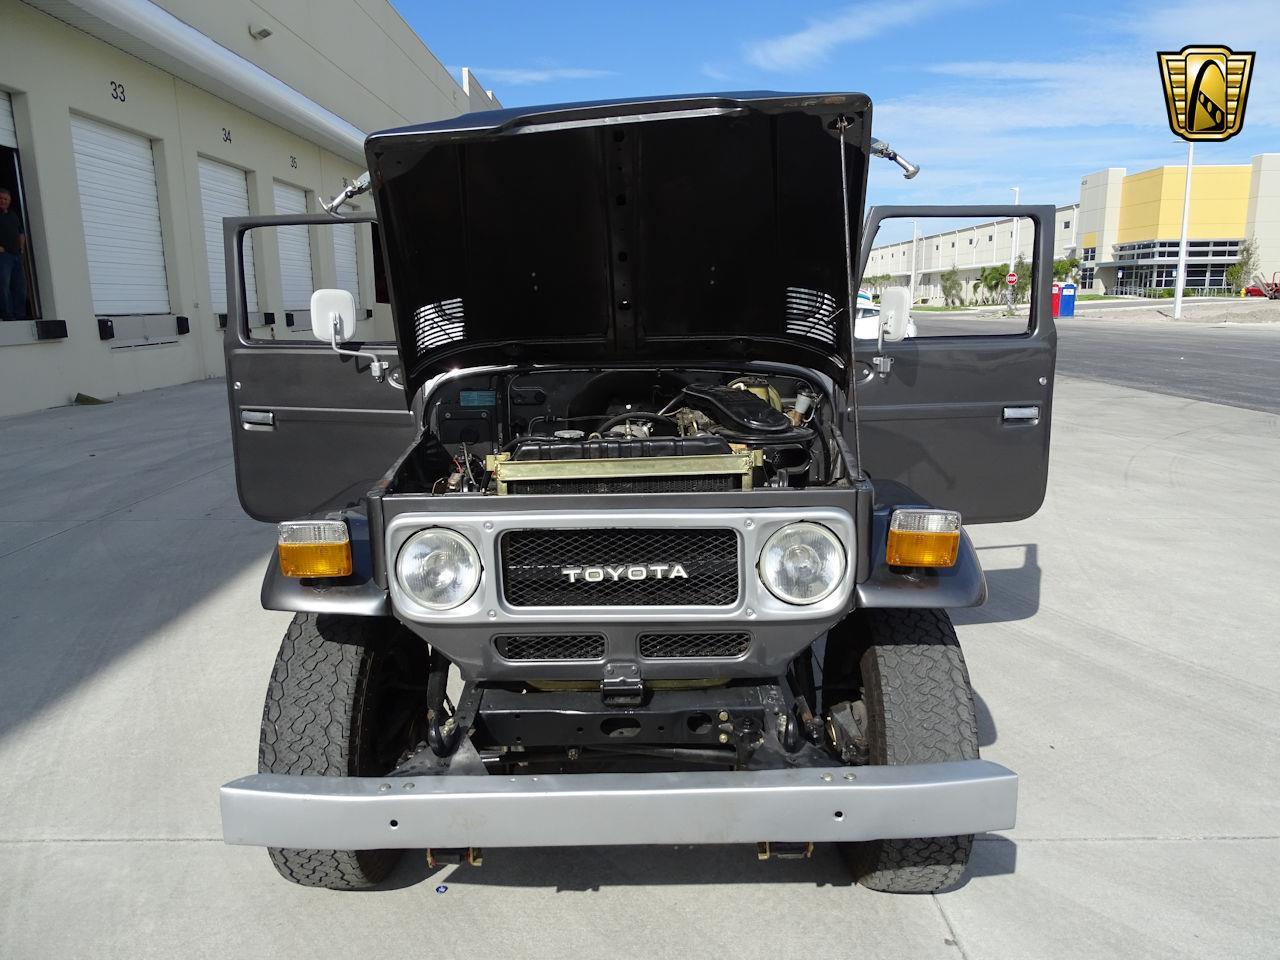 1977 Toyota Land Cruiser Fj40 For Sale Cc 1167202 1960 77 Large Picture Of P0ma